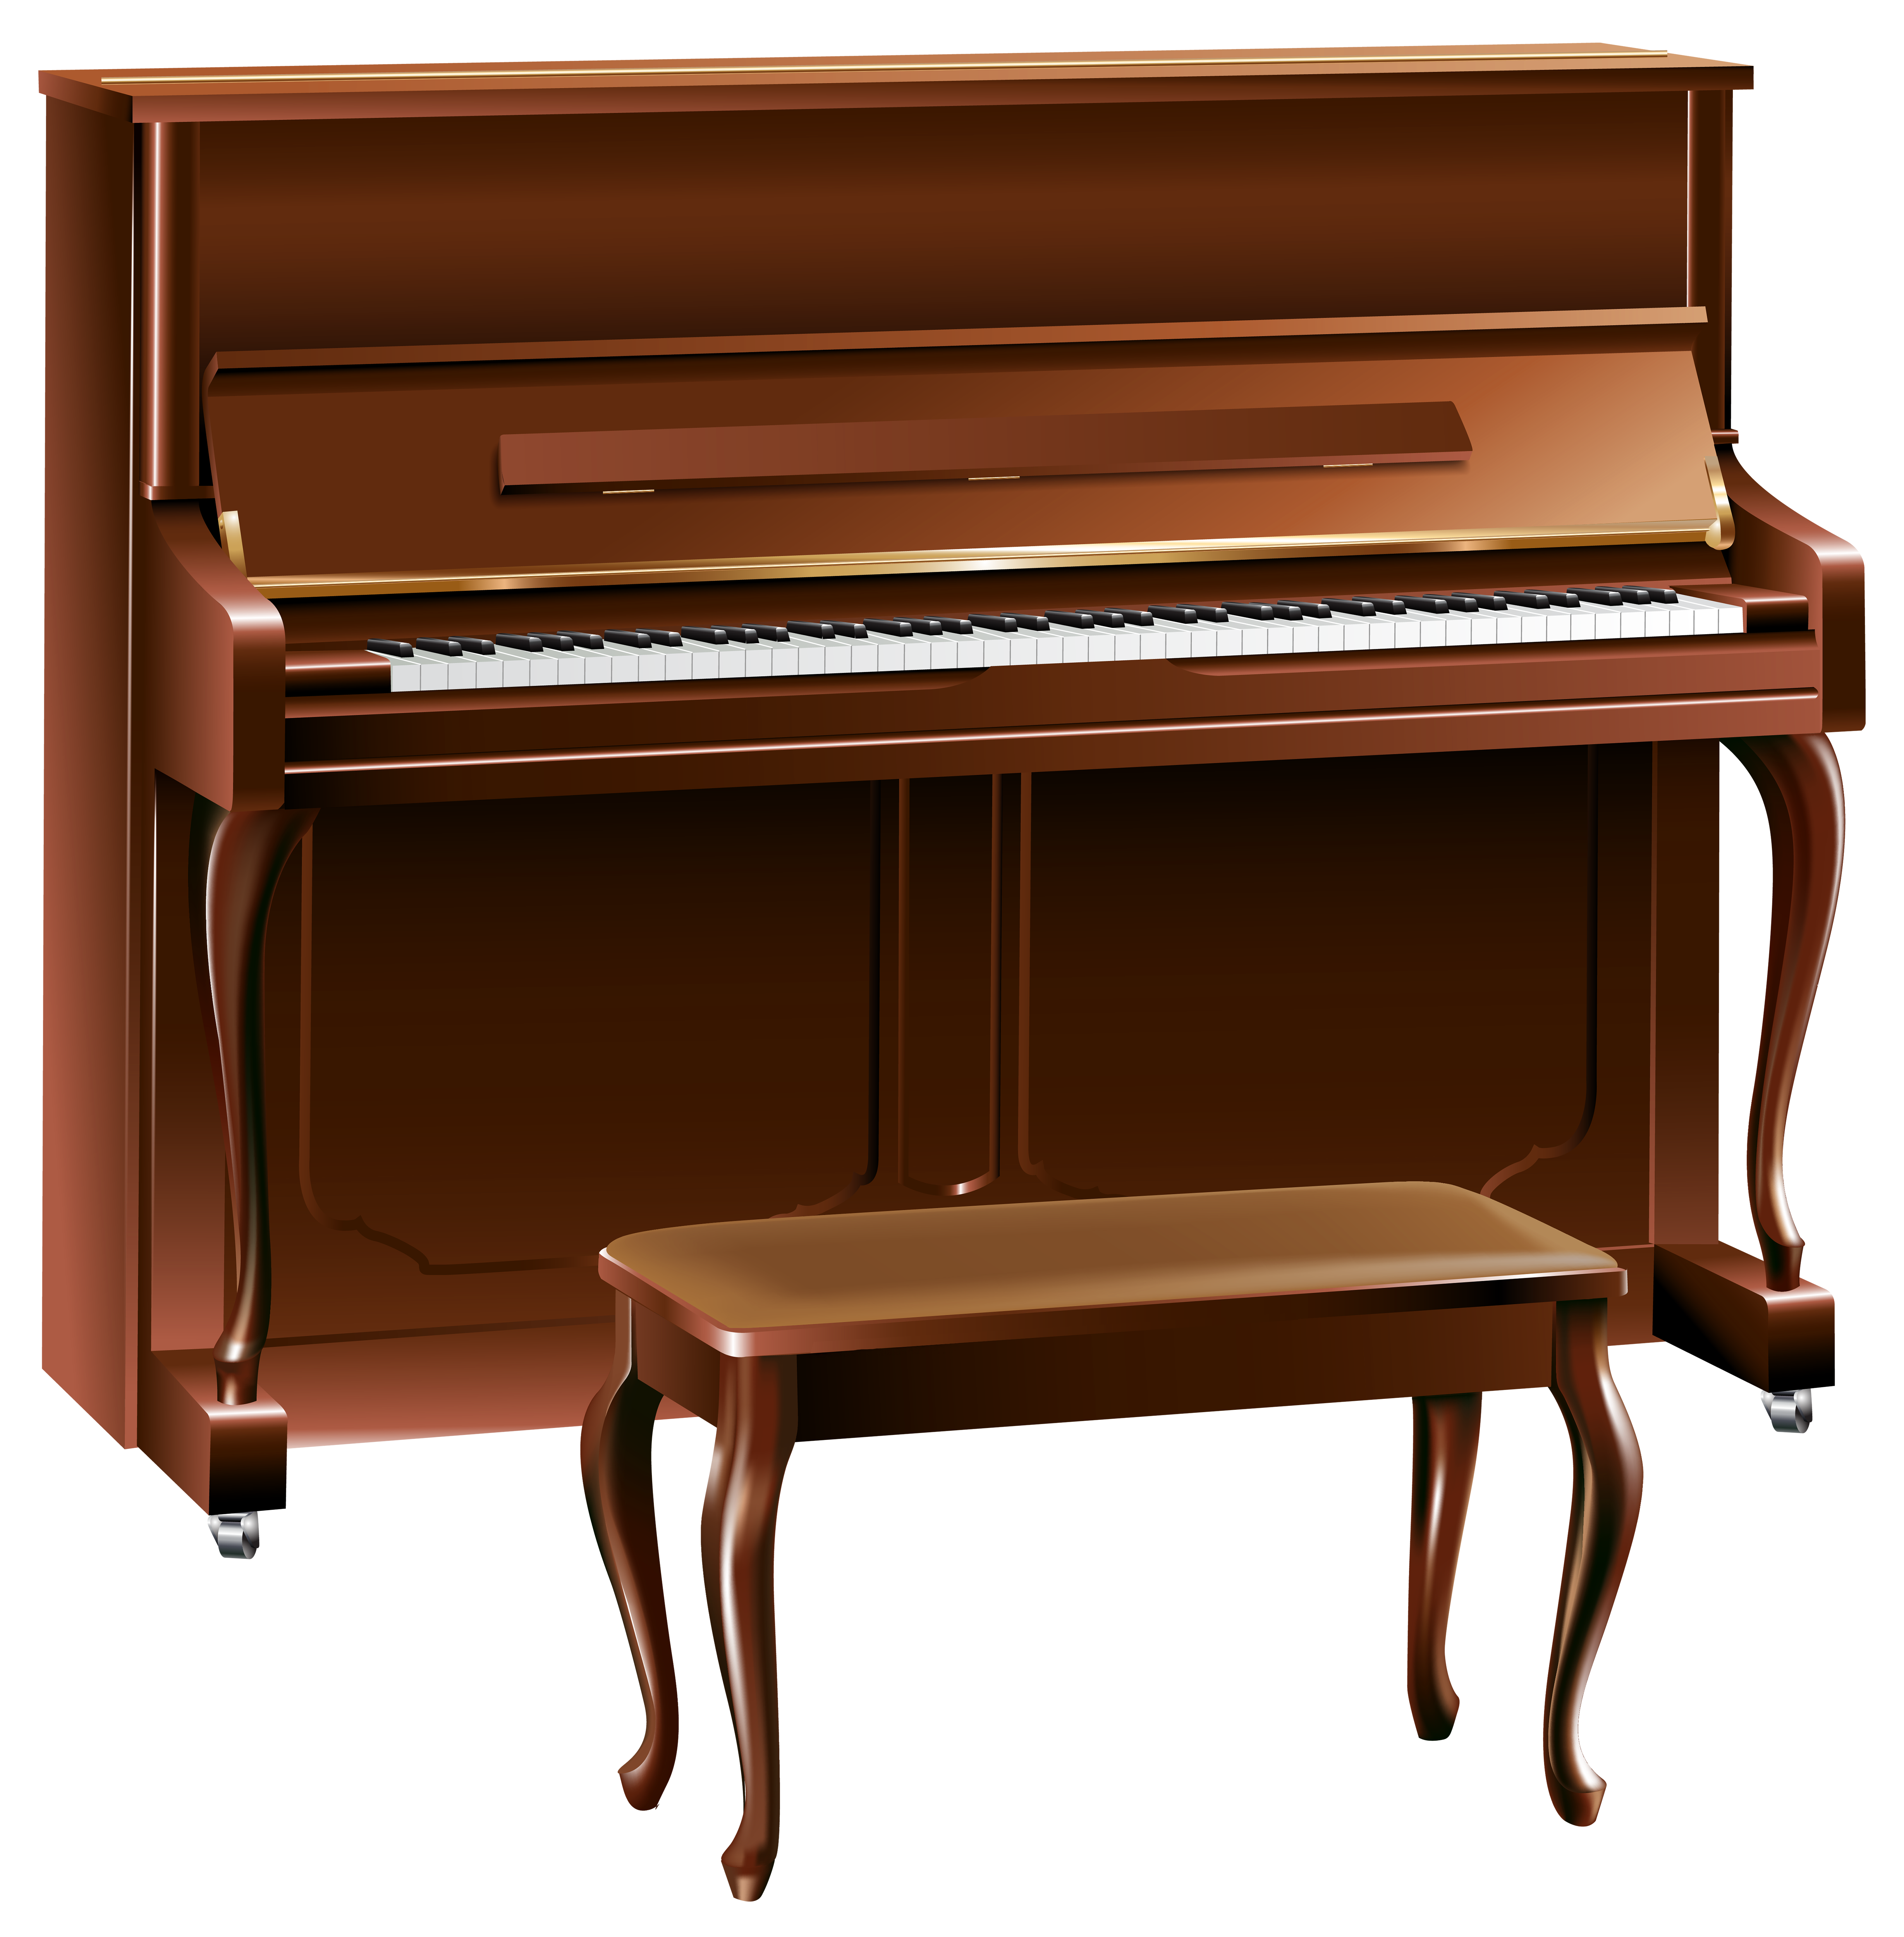 4916x5000 Piano Clip Art Free Vector In Open Office Drawing Svg Svg 3 2